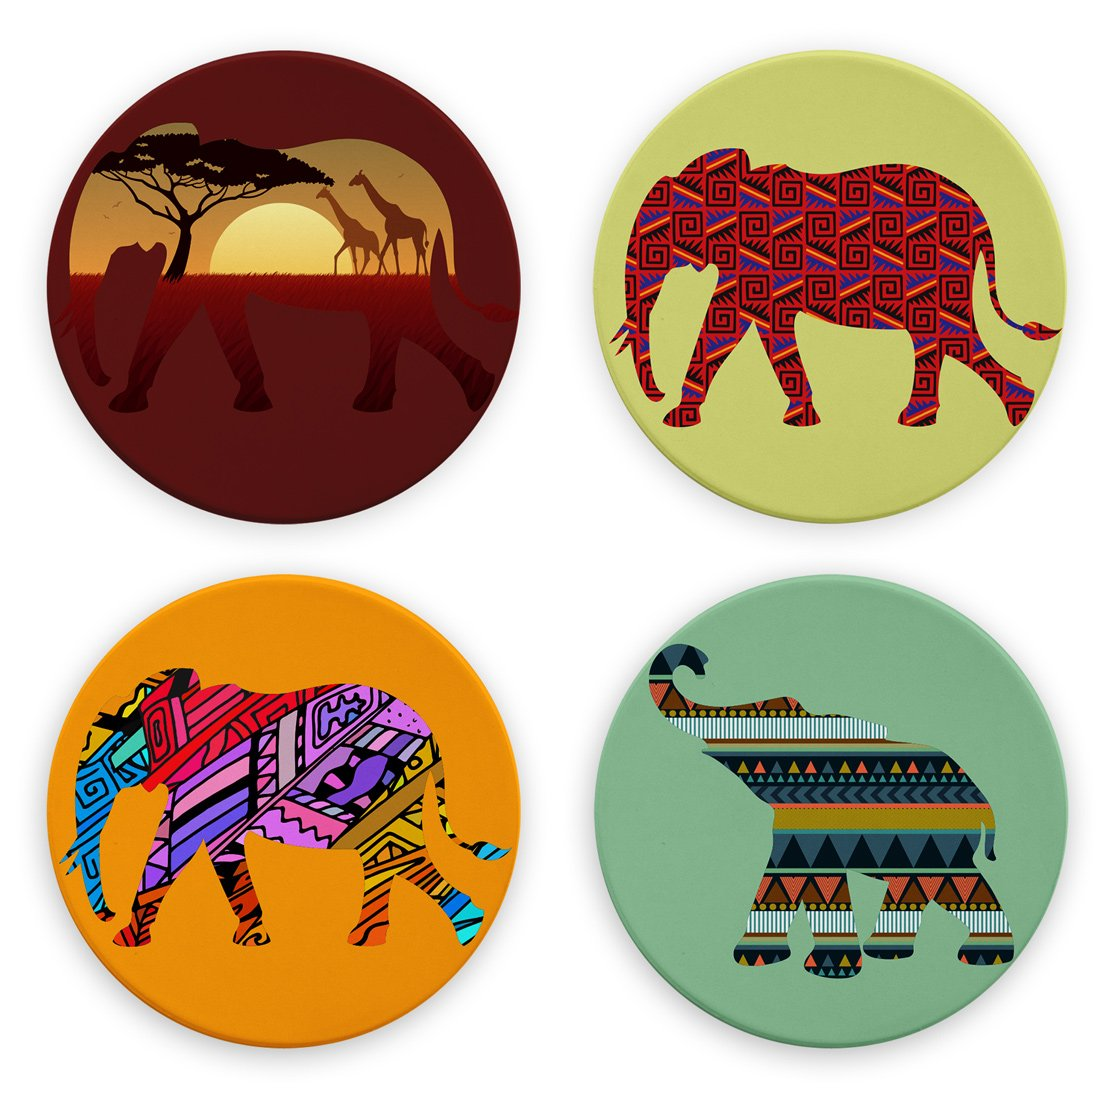 AK Wall Art Colorful African Elephants Design - Round Coasters, Natural Sandstone - Set of 4